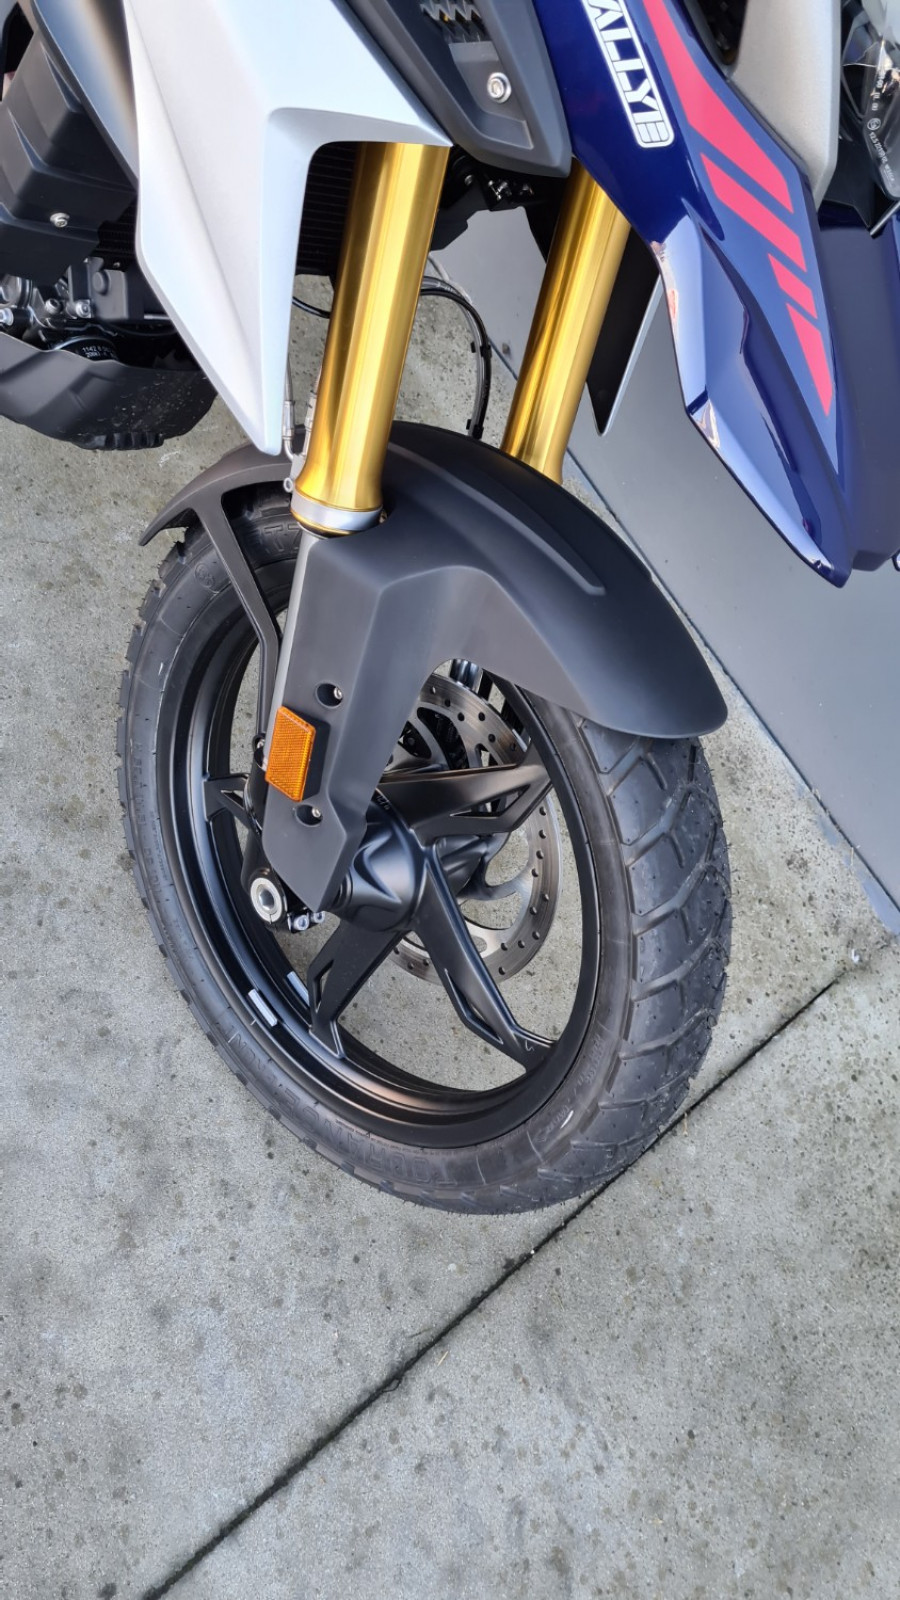 2021 BMW G 310 GS G G 310 GS Motorcycle Image 5